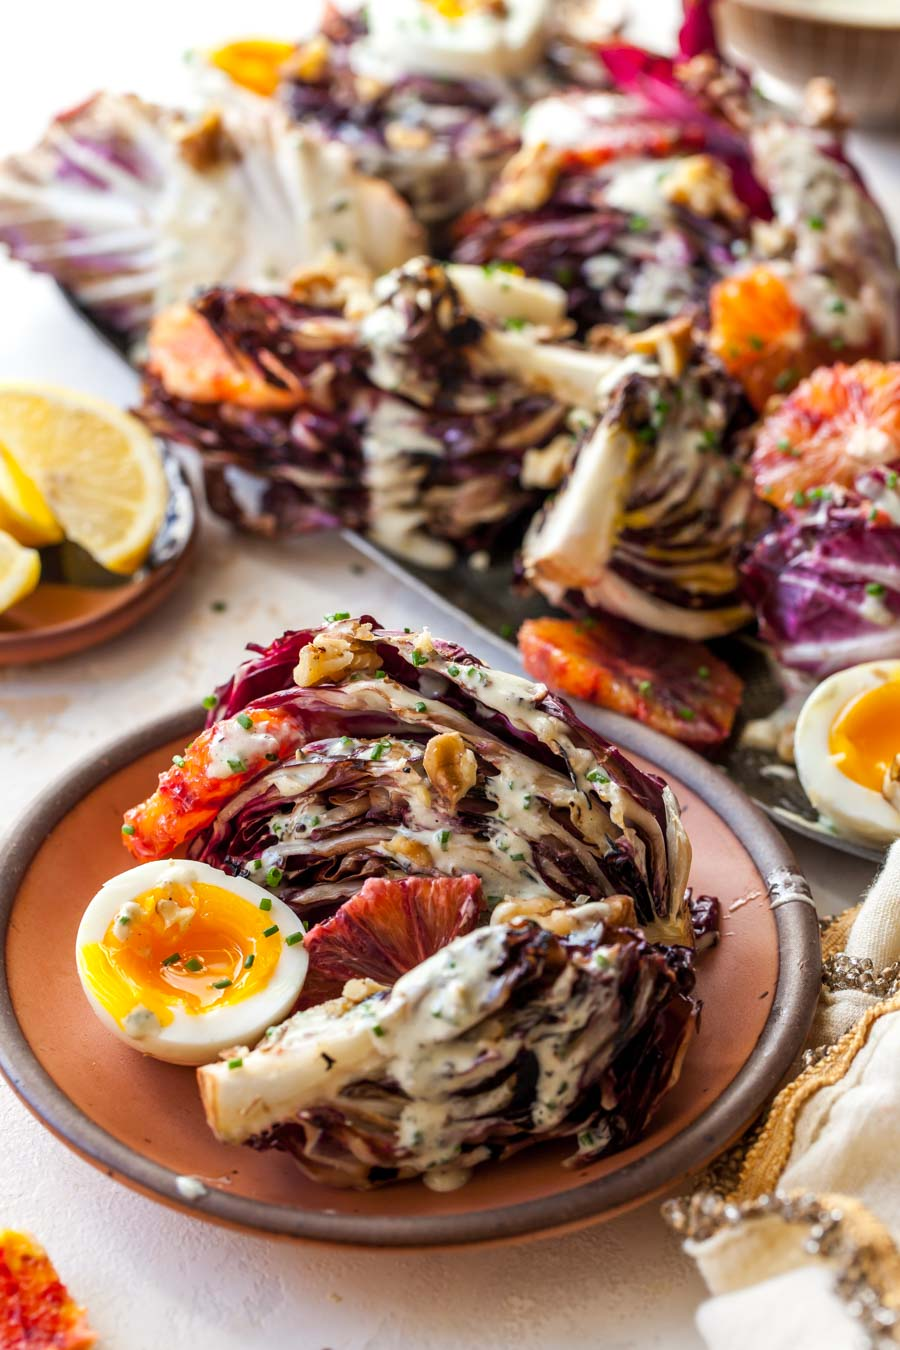 Radicchio Salad with Miso Dressing, Eggs, Citrus, and Walnuts